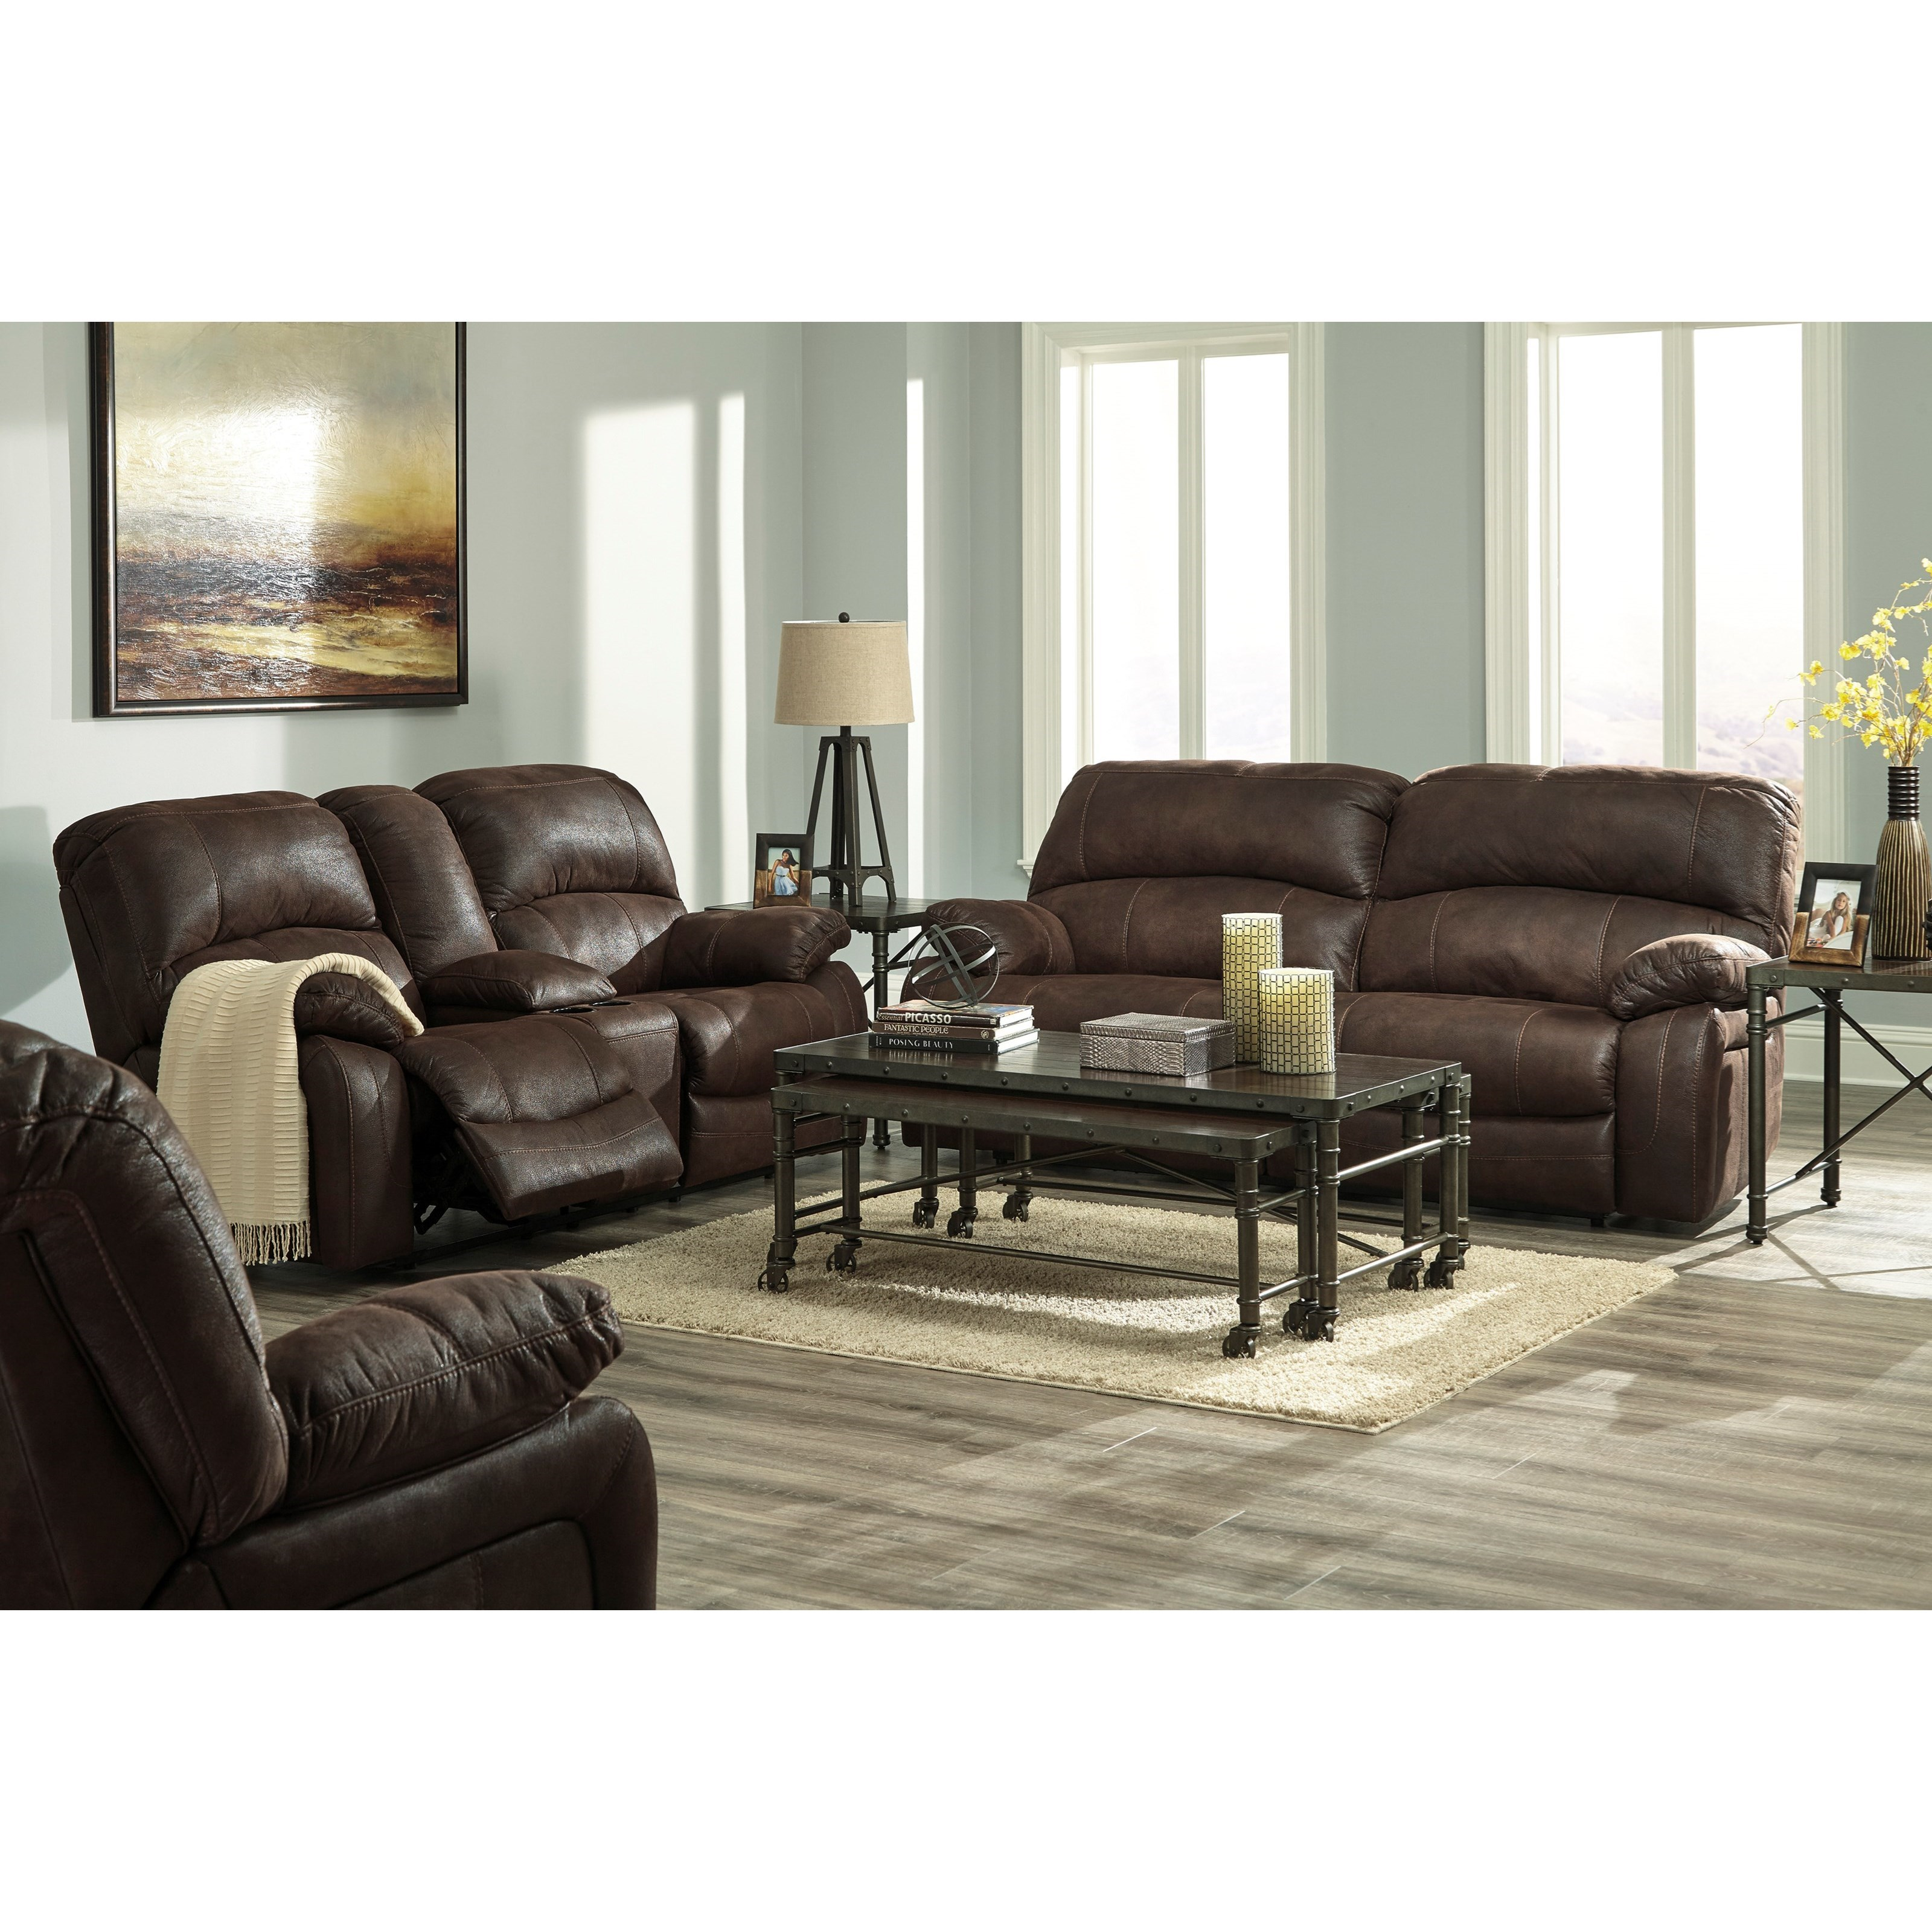 Signature Design By Ashley Zavier Power Reclining Living Room Group Olinde 39 S Furniture